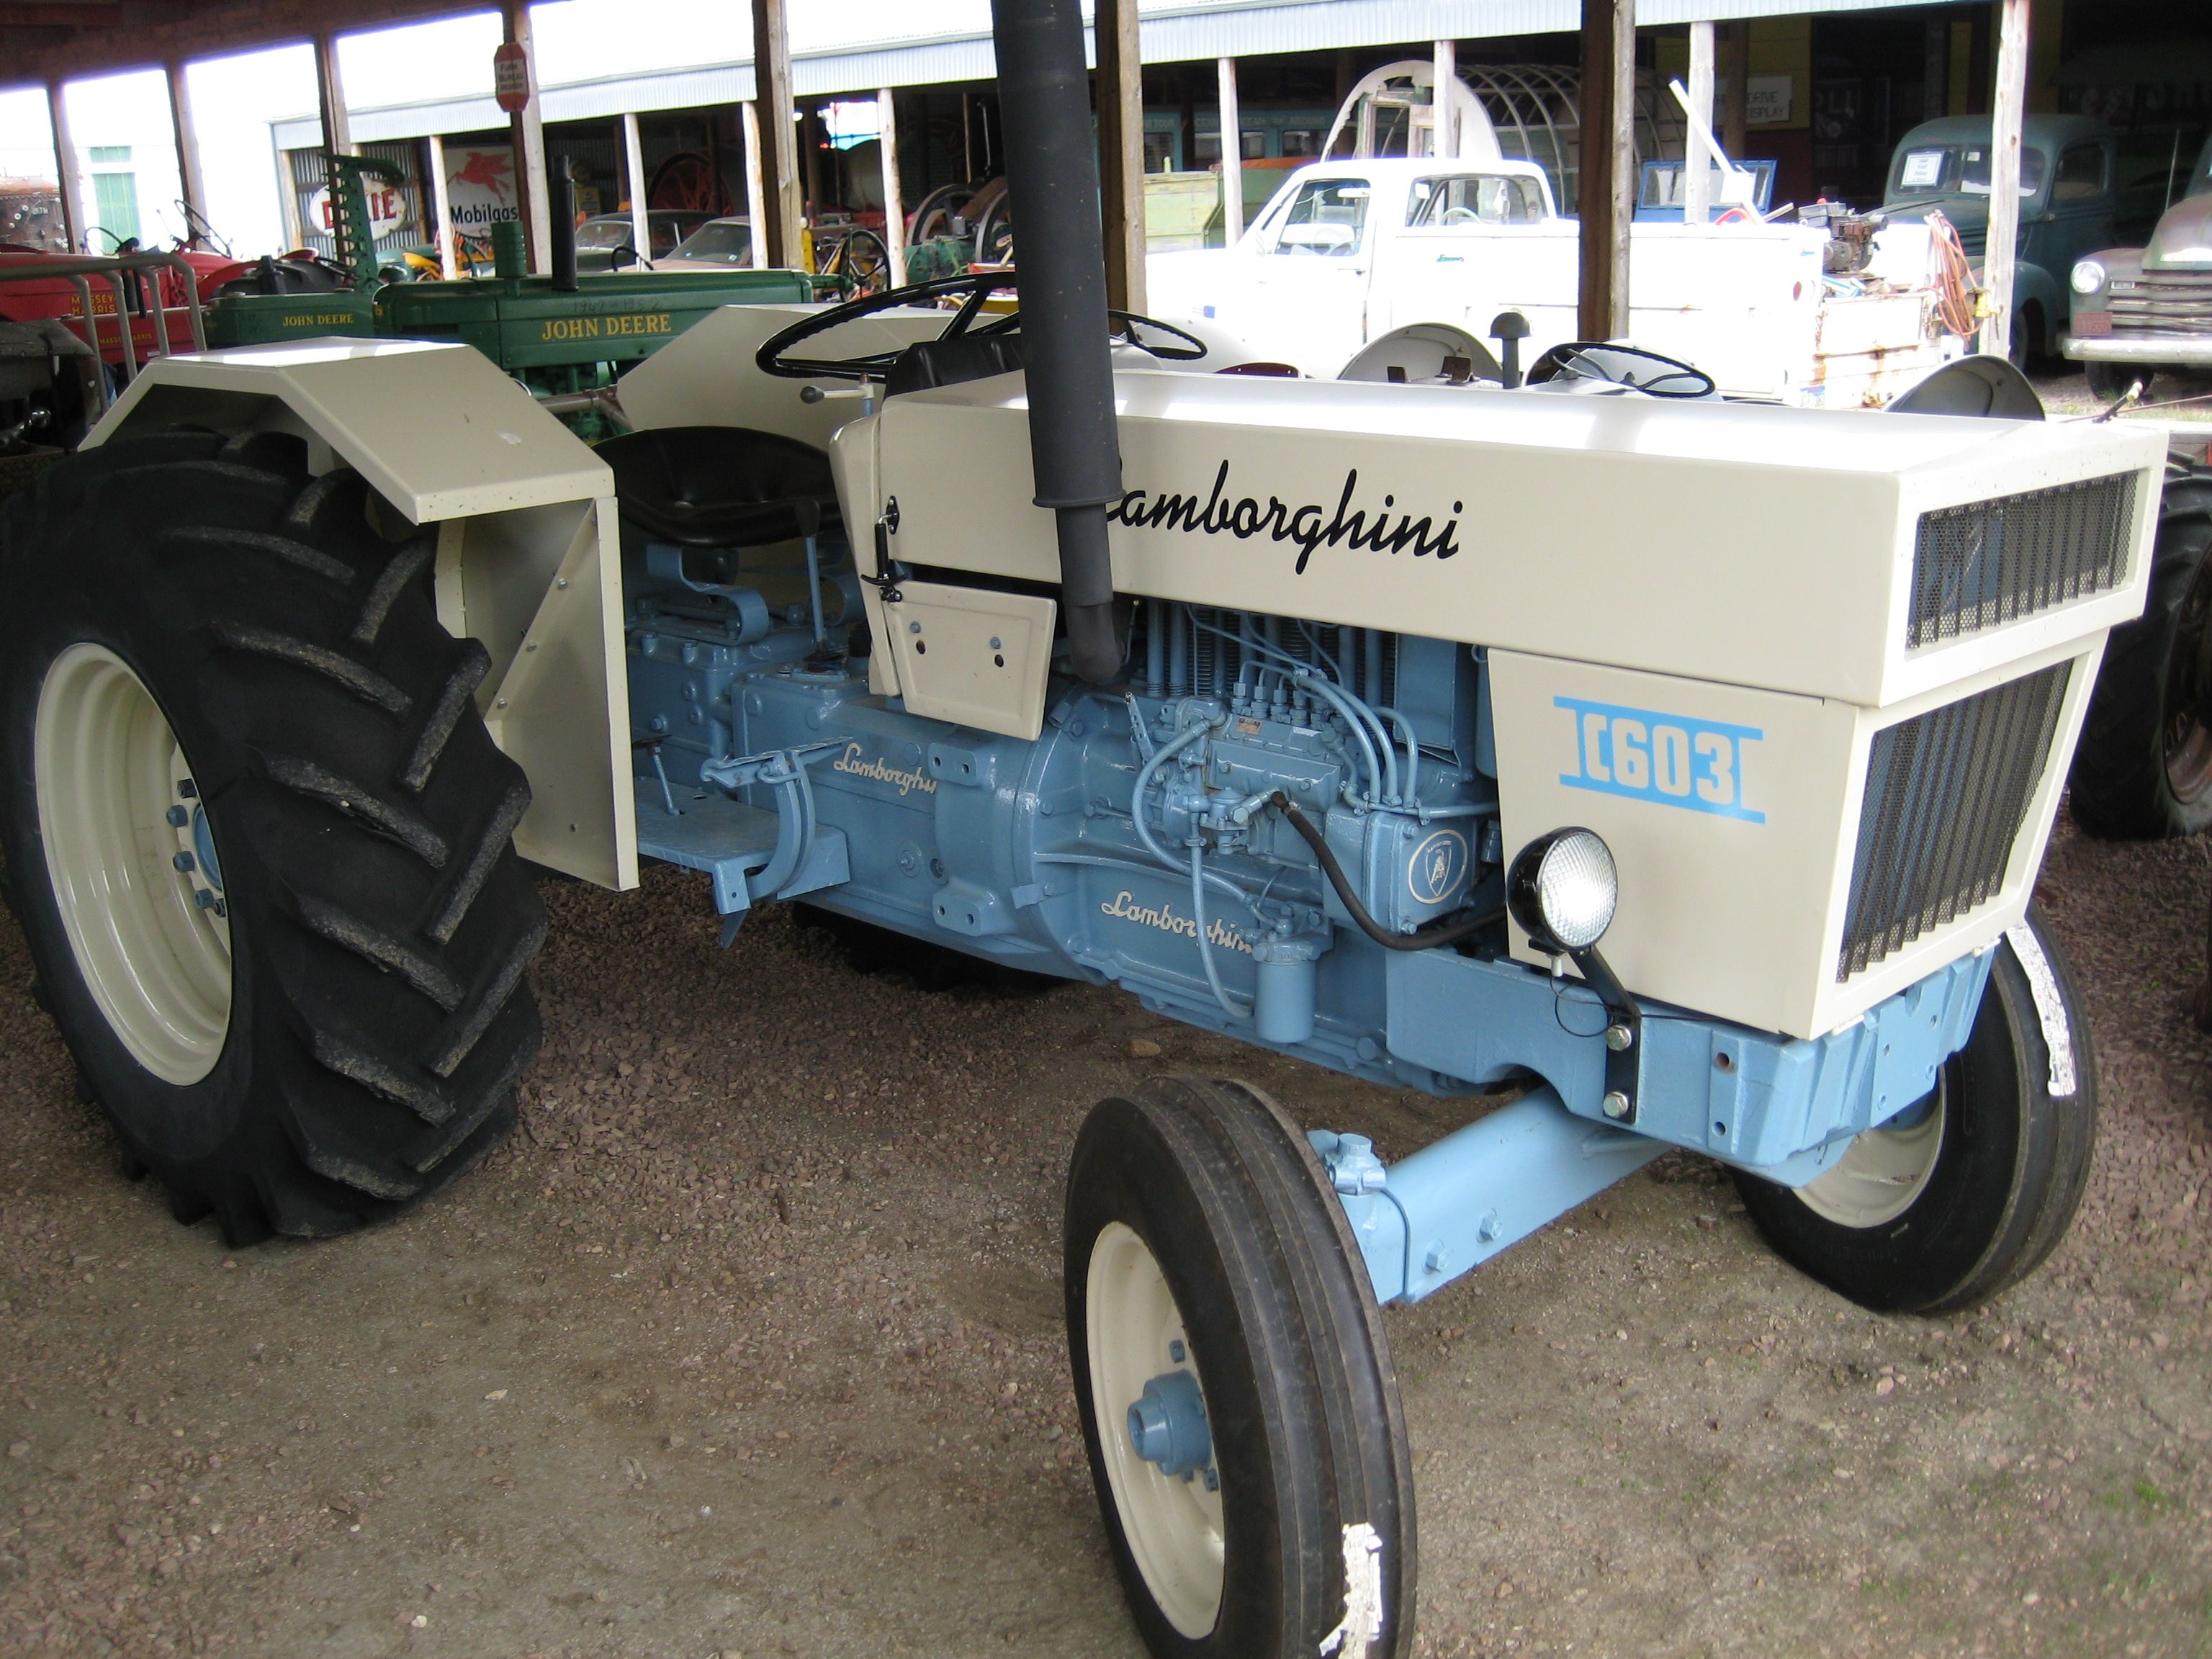 lamborghini first started out making tractors, but switched their